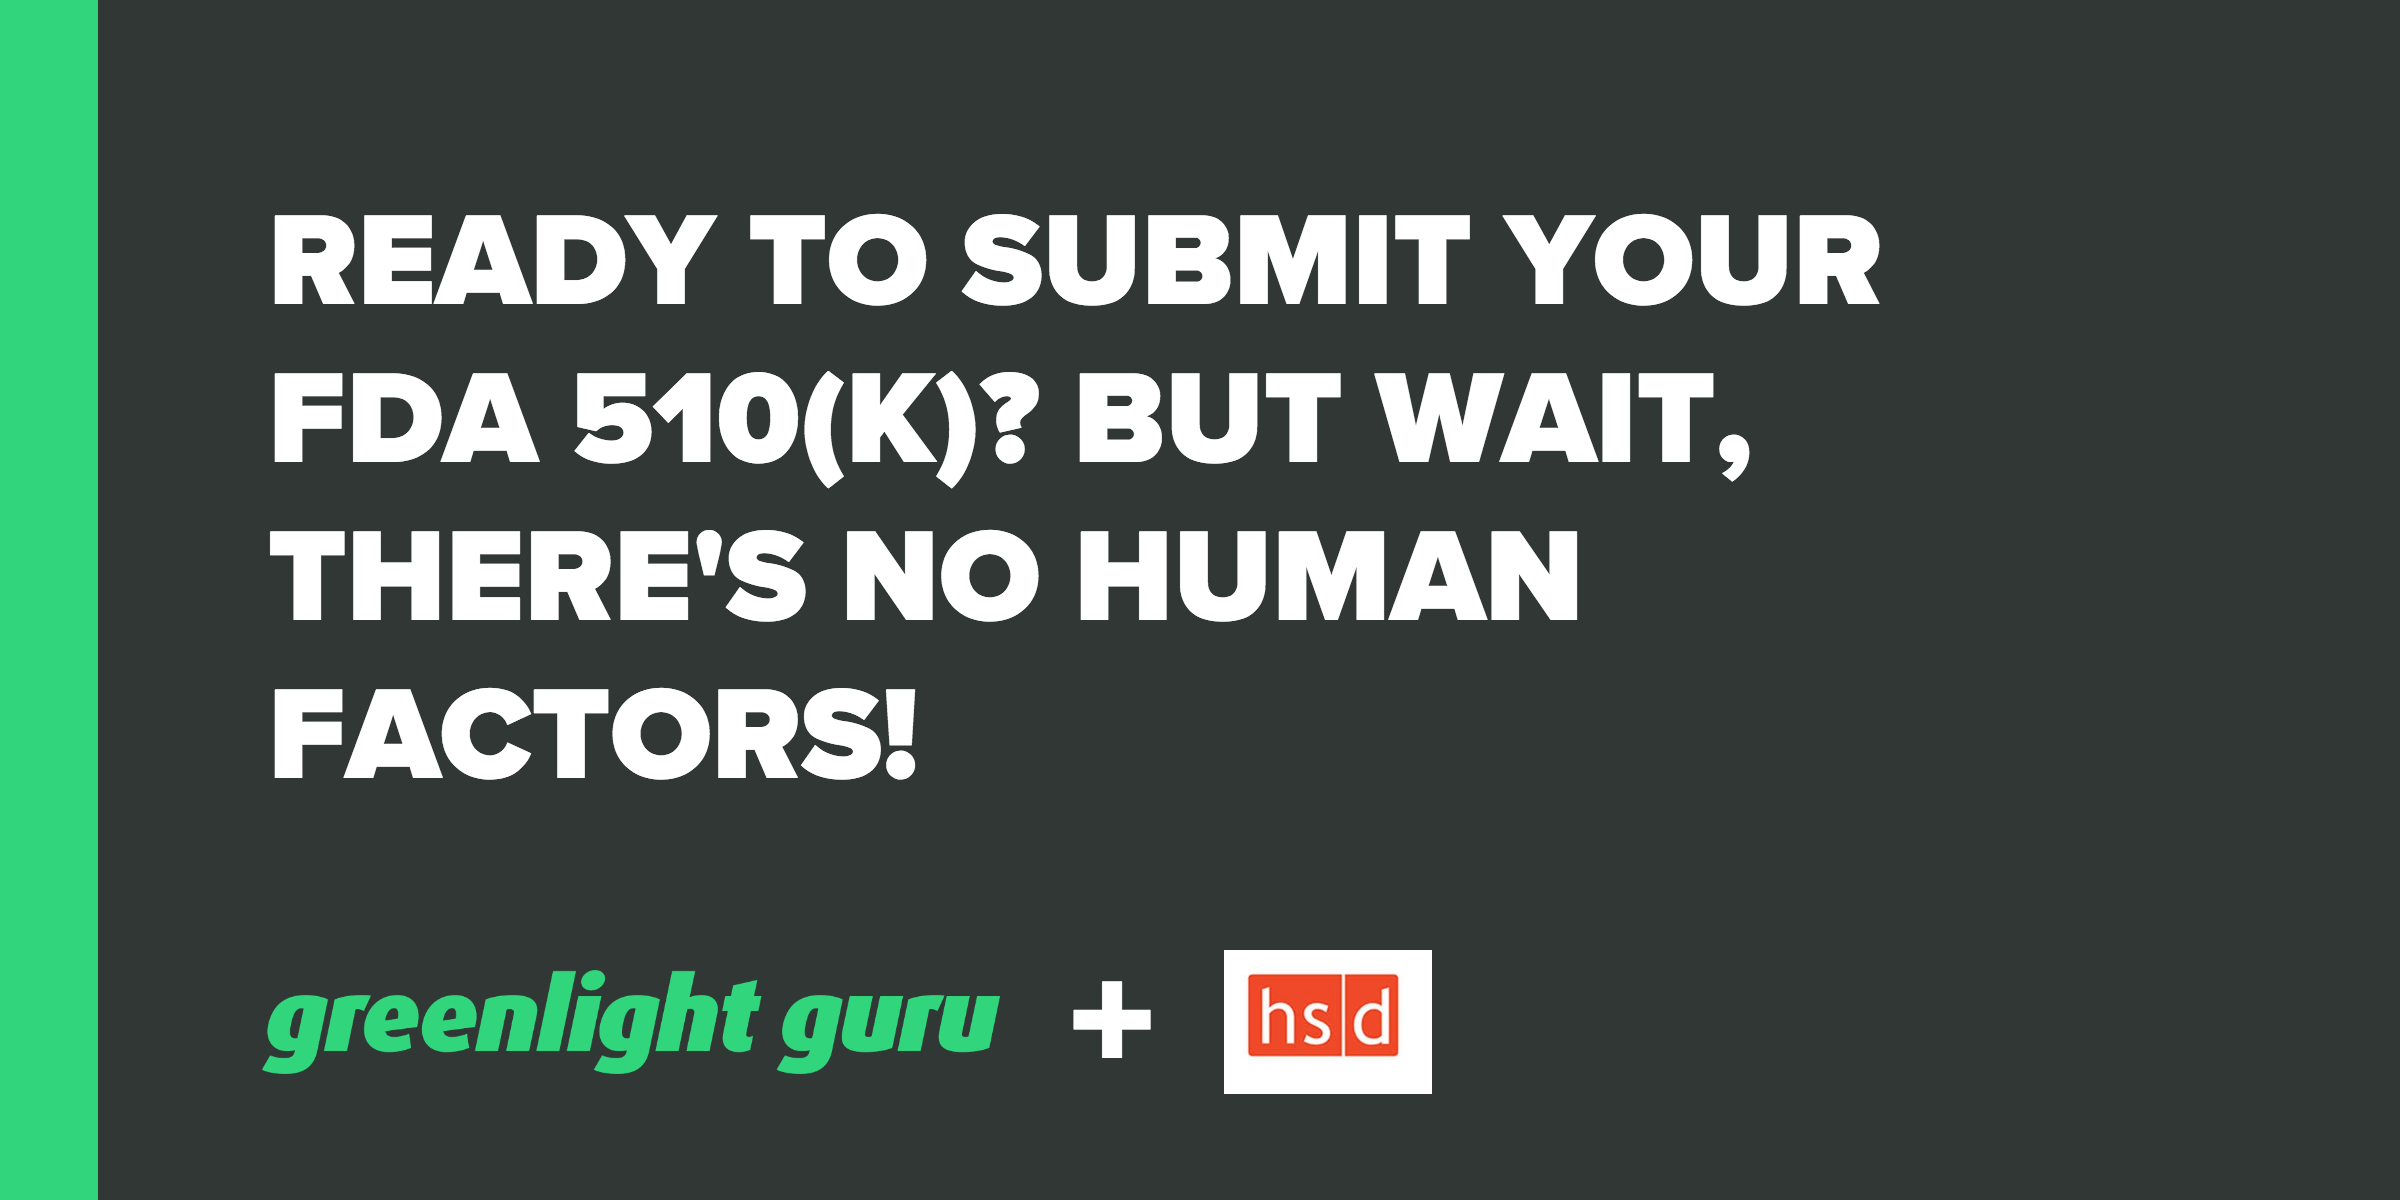 Ready to Submit Your FDA 510(k)? But Wait, There's No Human Factors! - Featured Image